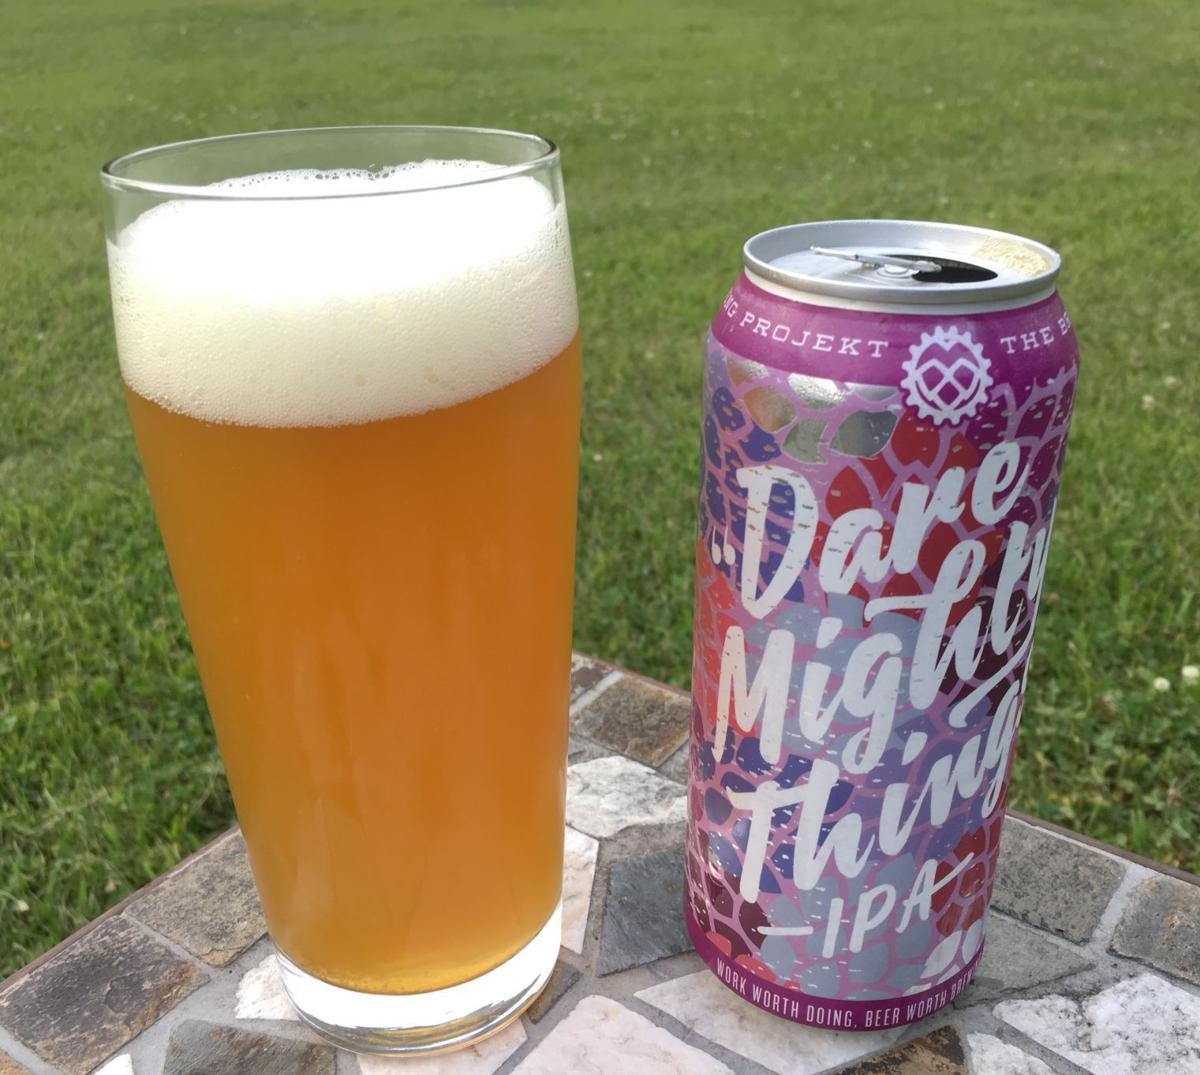 Brewing Projekt Dare Mighty Things Mosaic